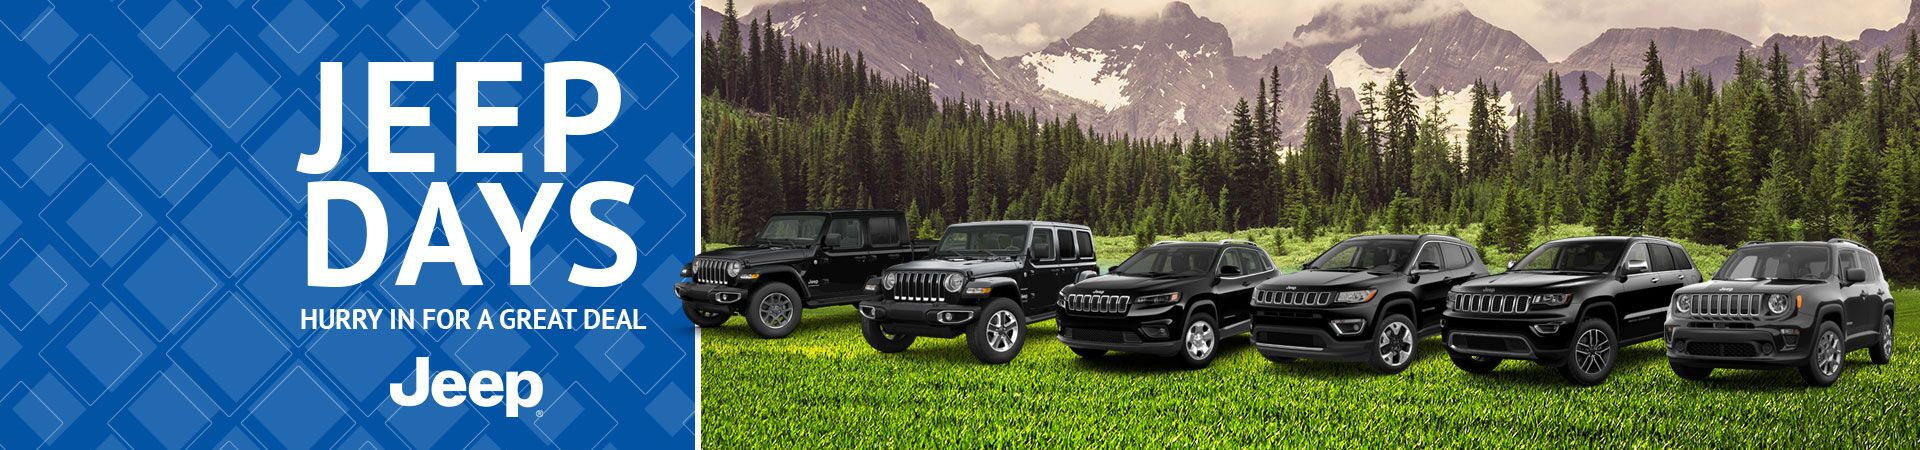 Jeep Days at Uptown Motors